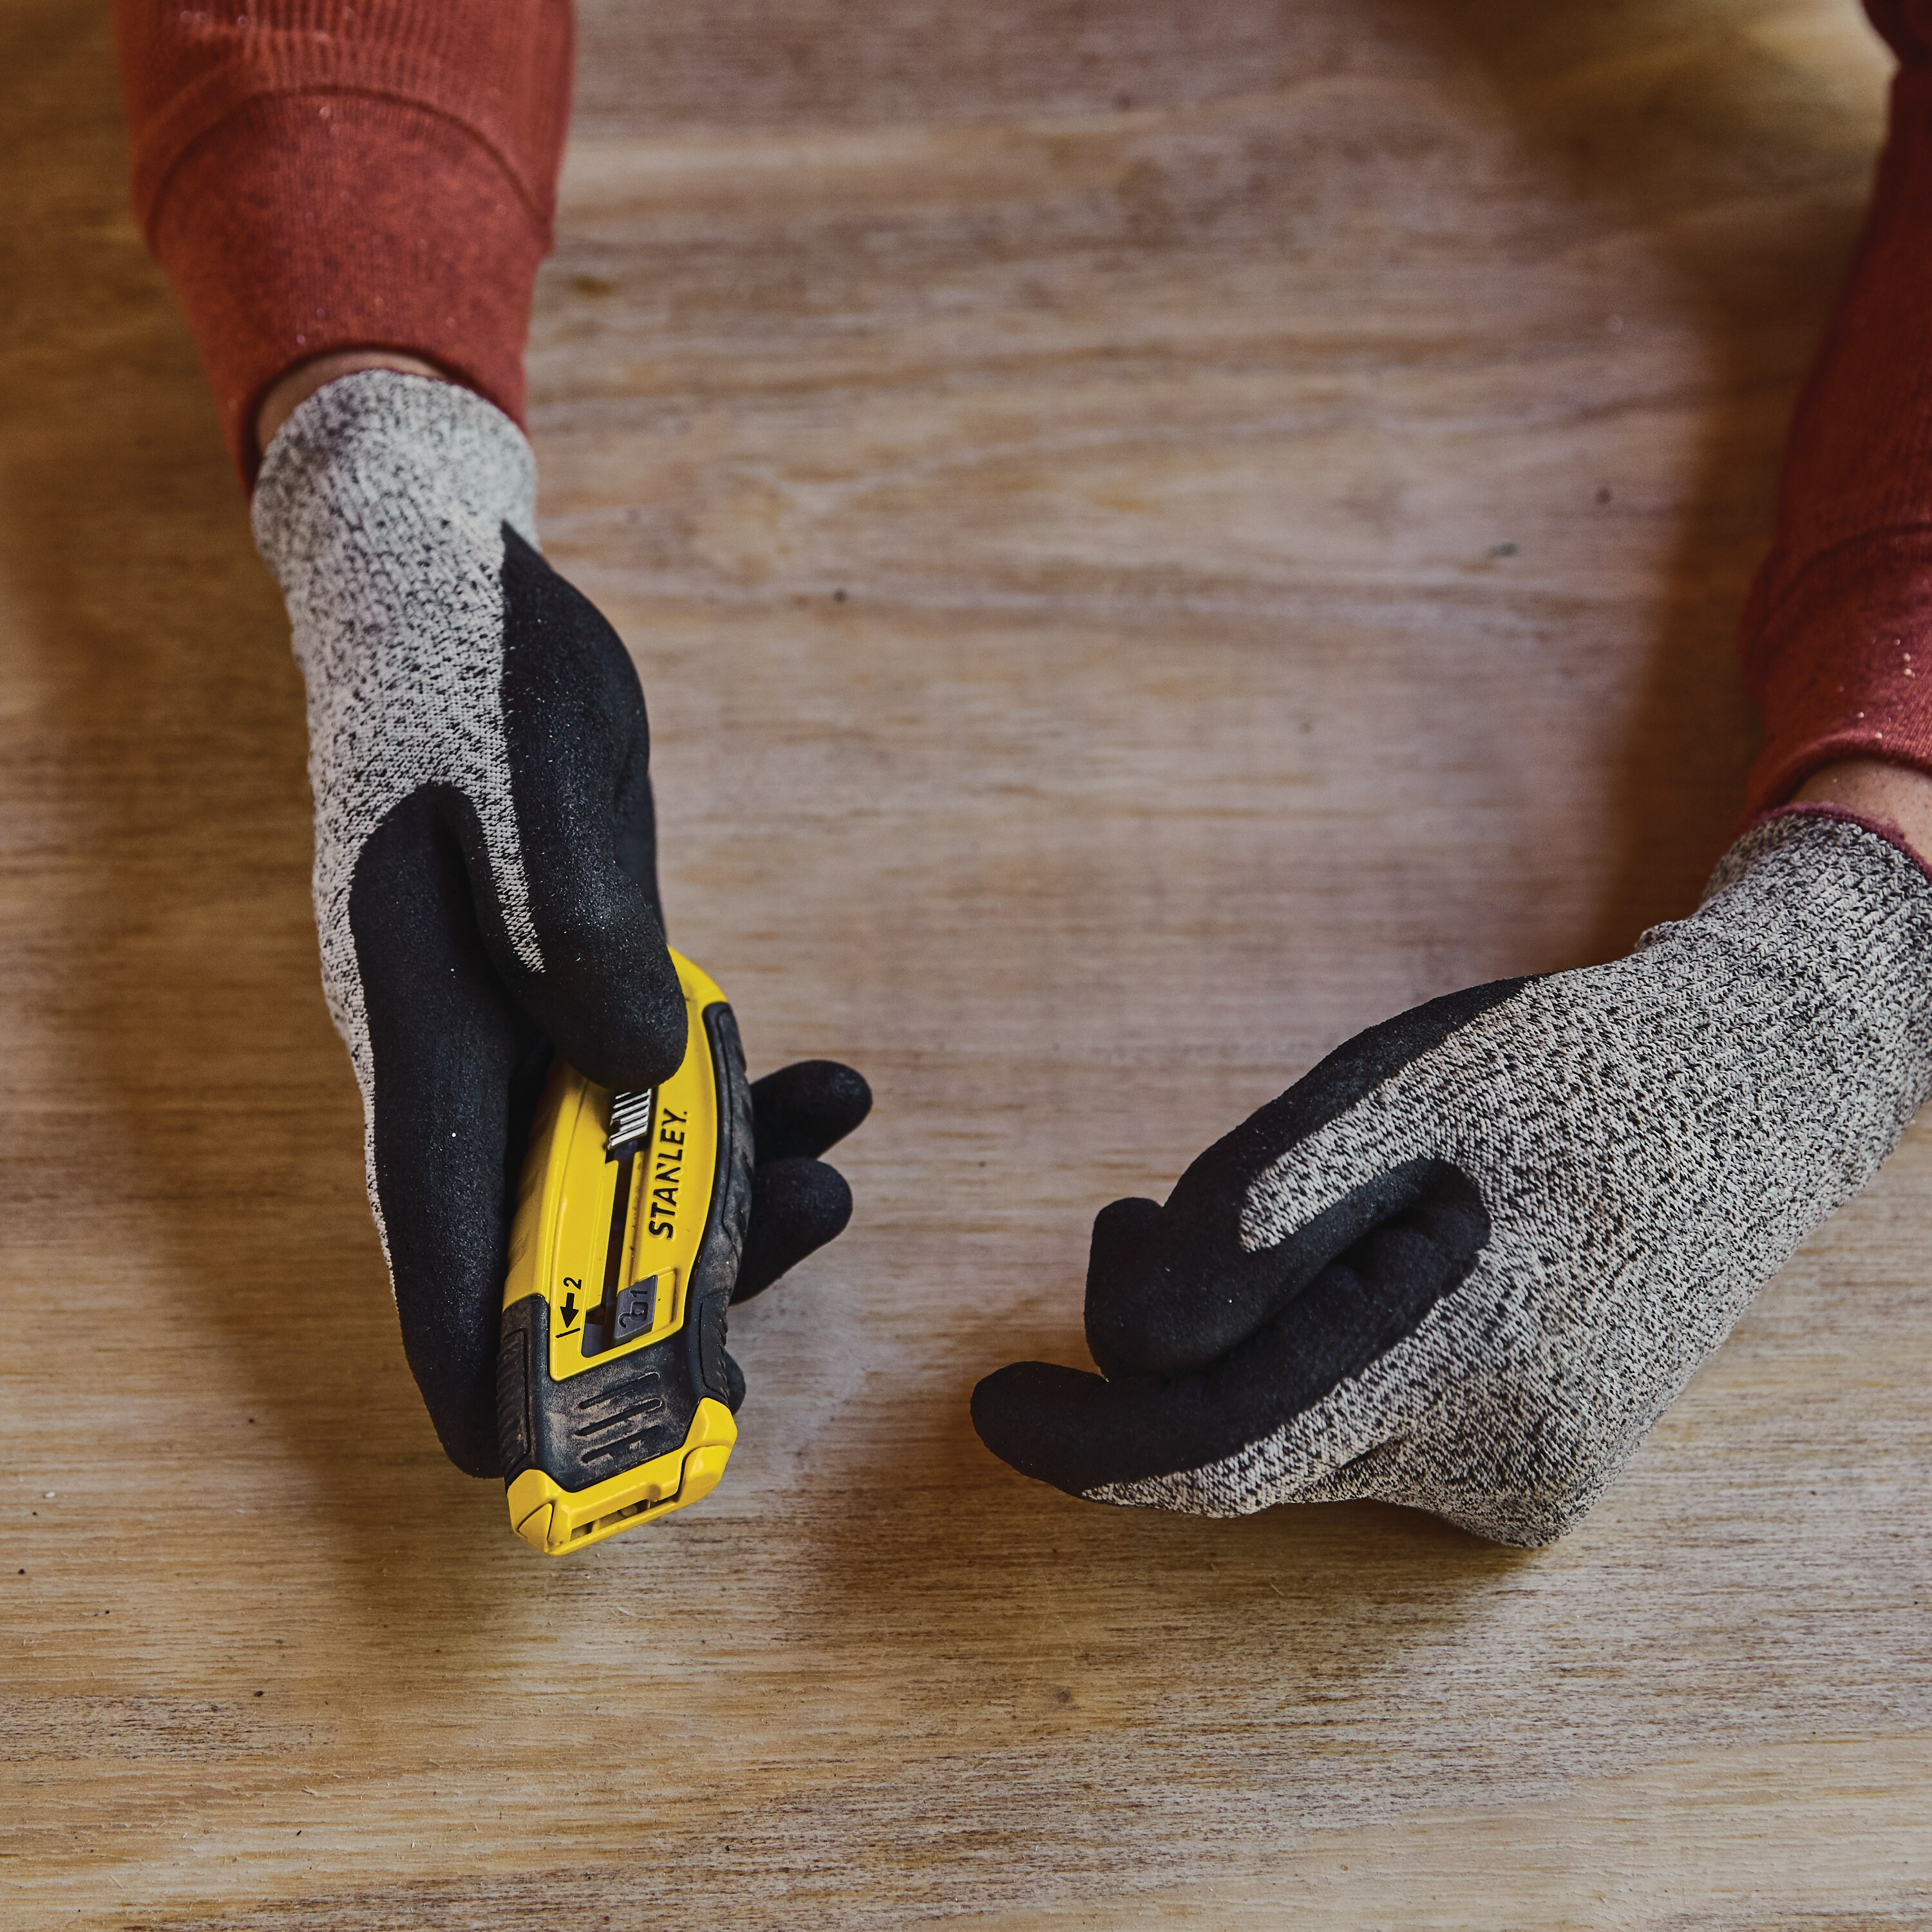 Stanley Tools - ControlGrip Retractable Utility Knife - STHT10432